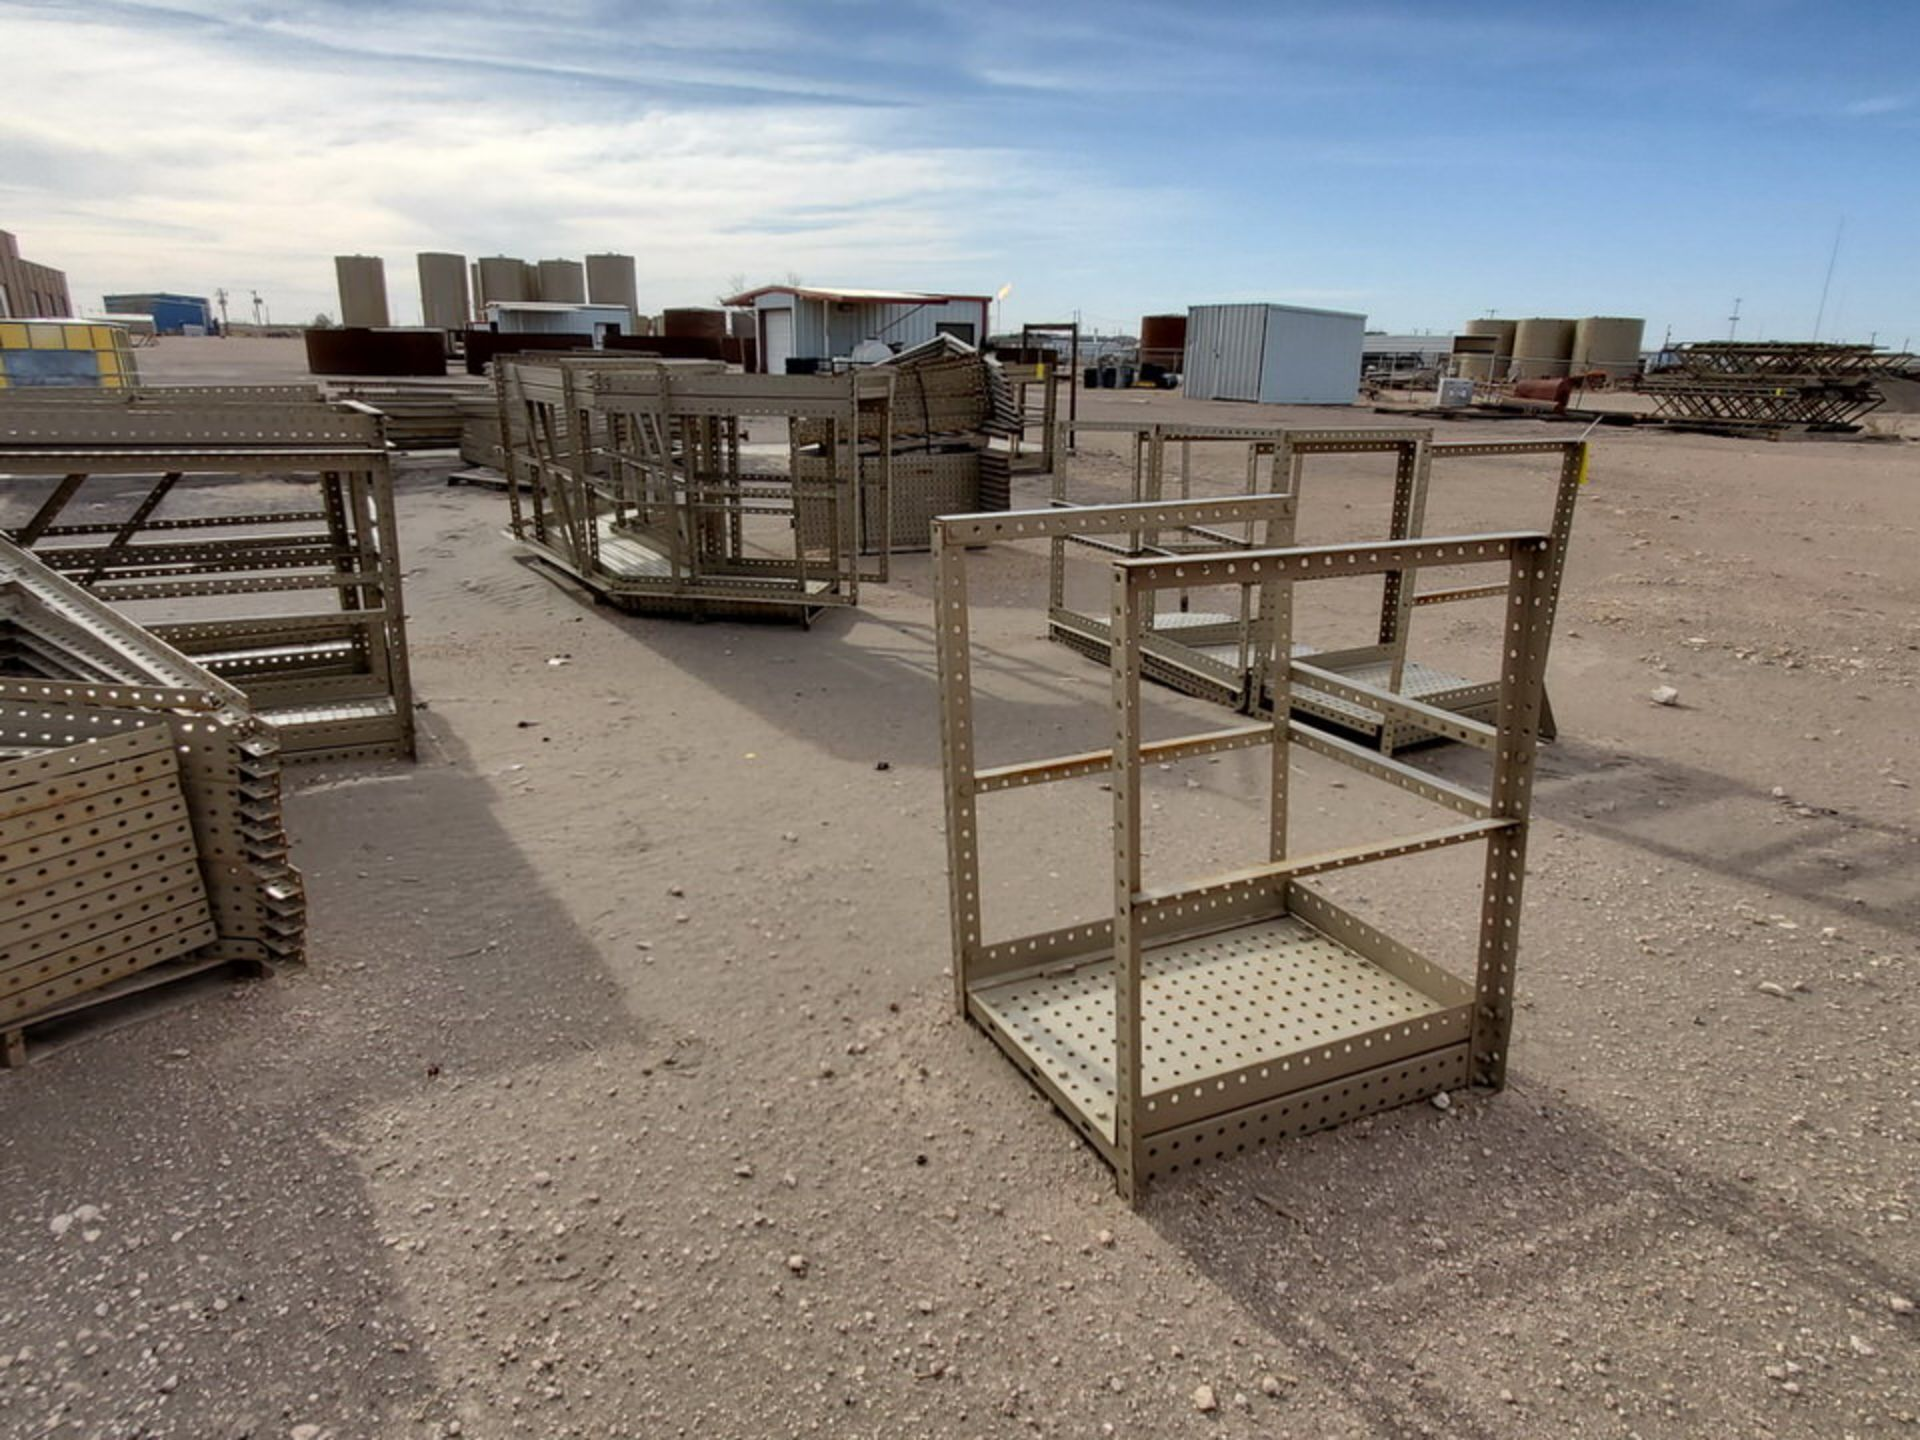 Disassembled Catwalk Sections - Image 19 of 20